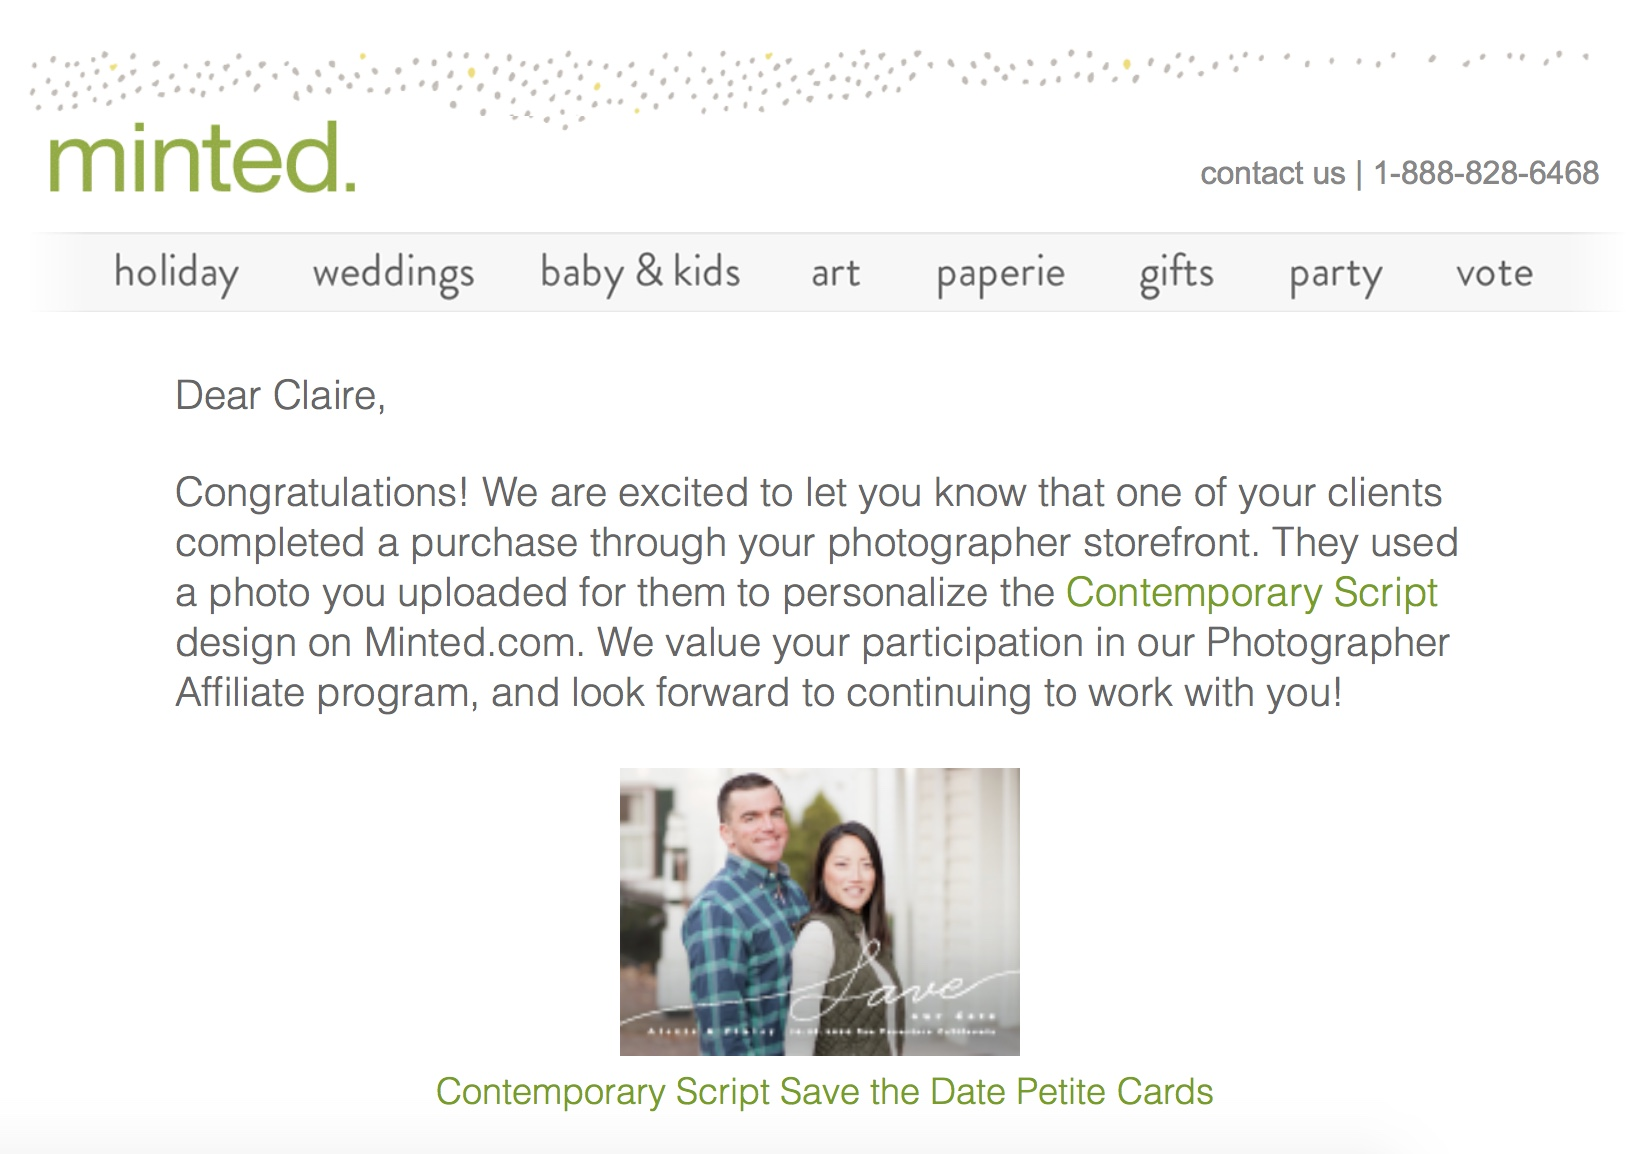 using minted photographer affiliate program